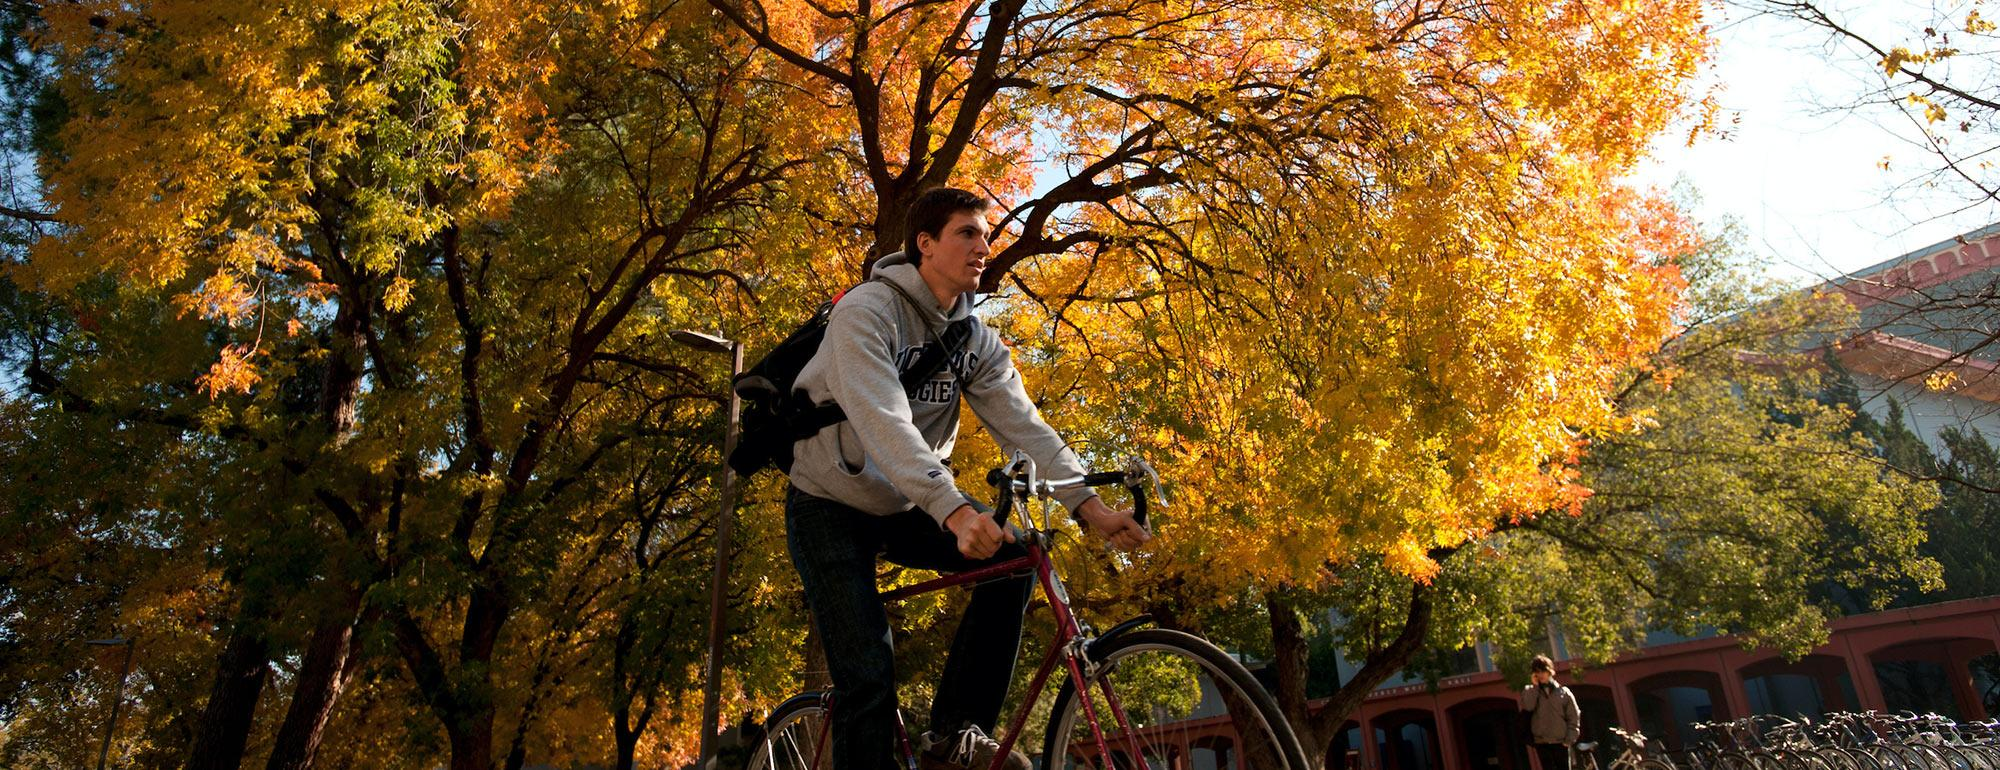 A male uc davis student rides his bike under autumn leaves